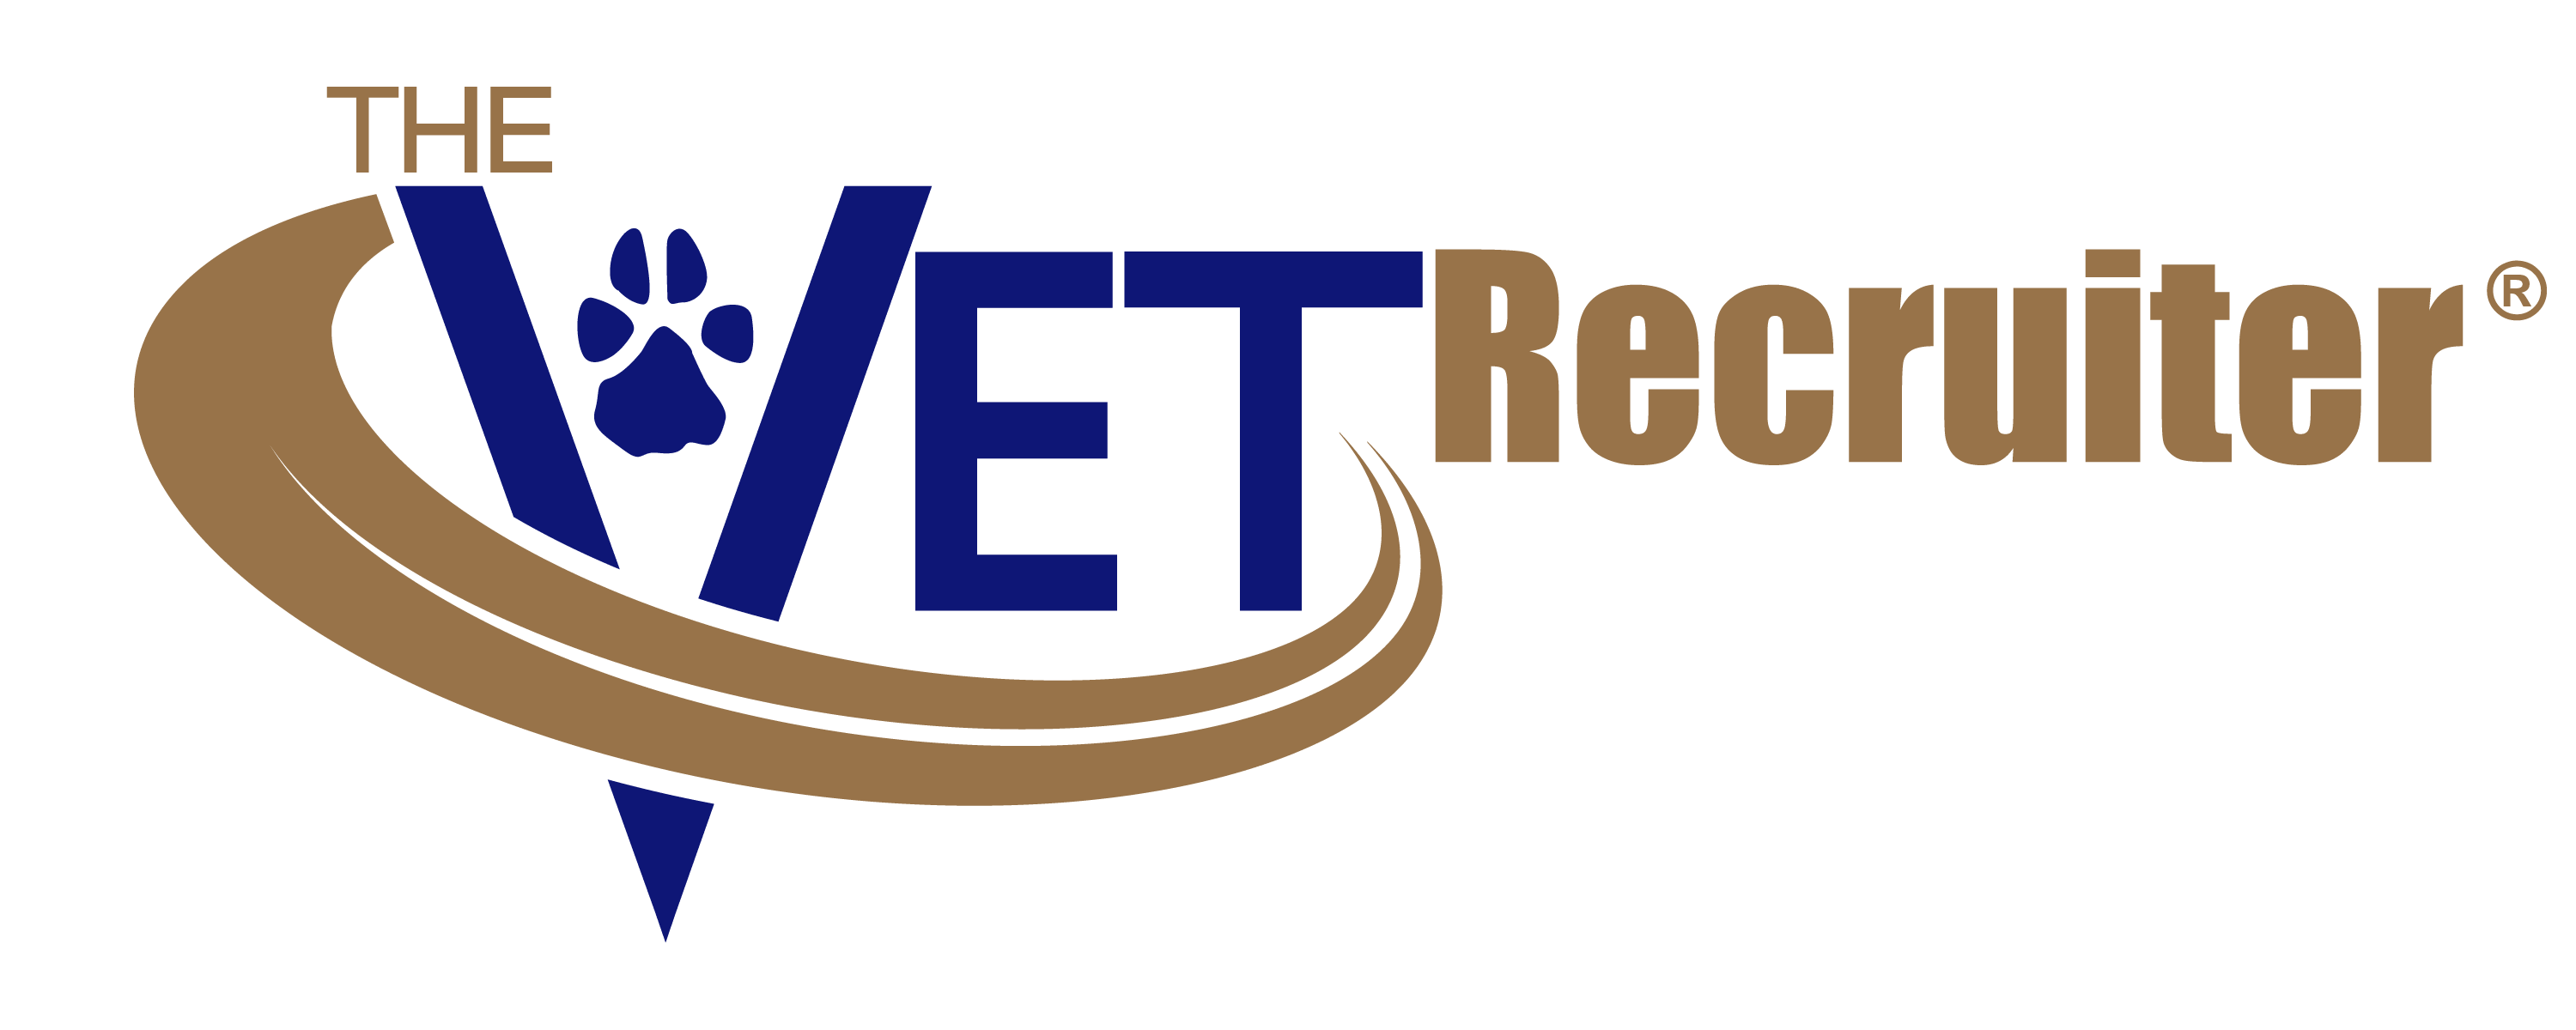 the vet recruiter logo 2 color